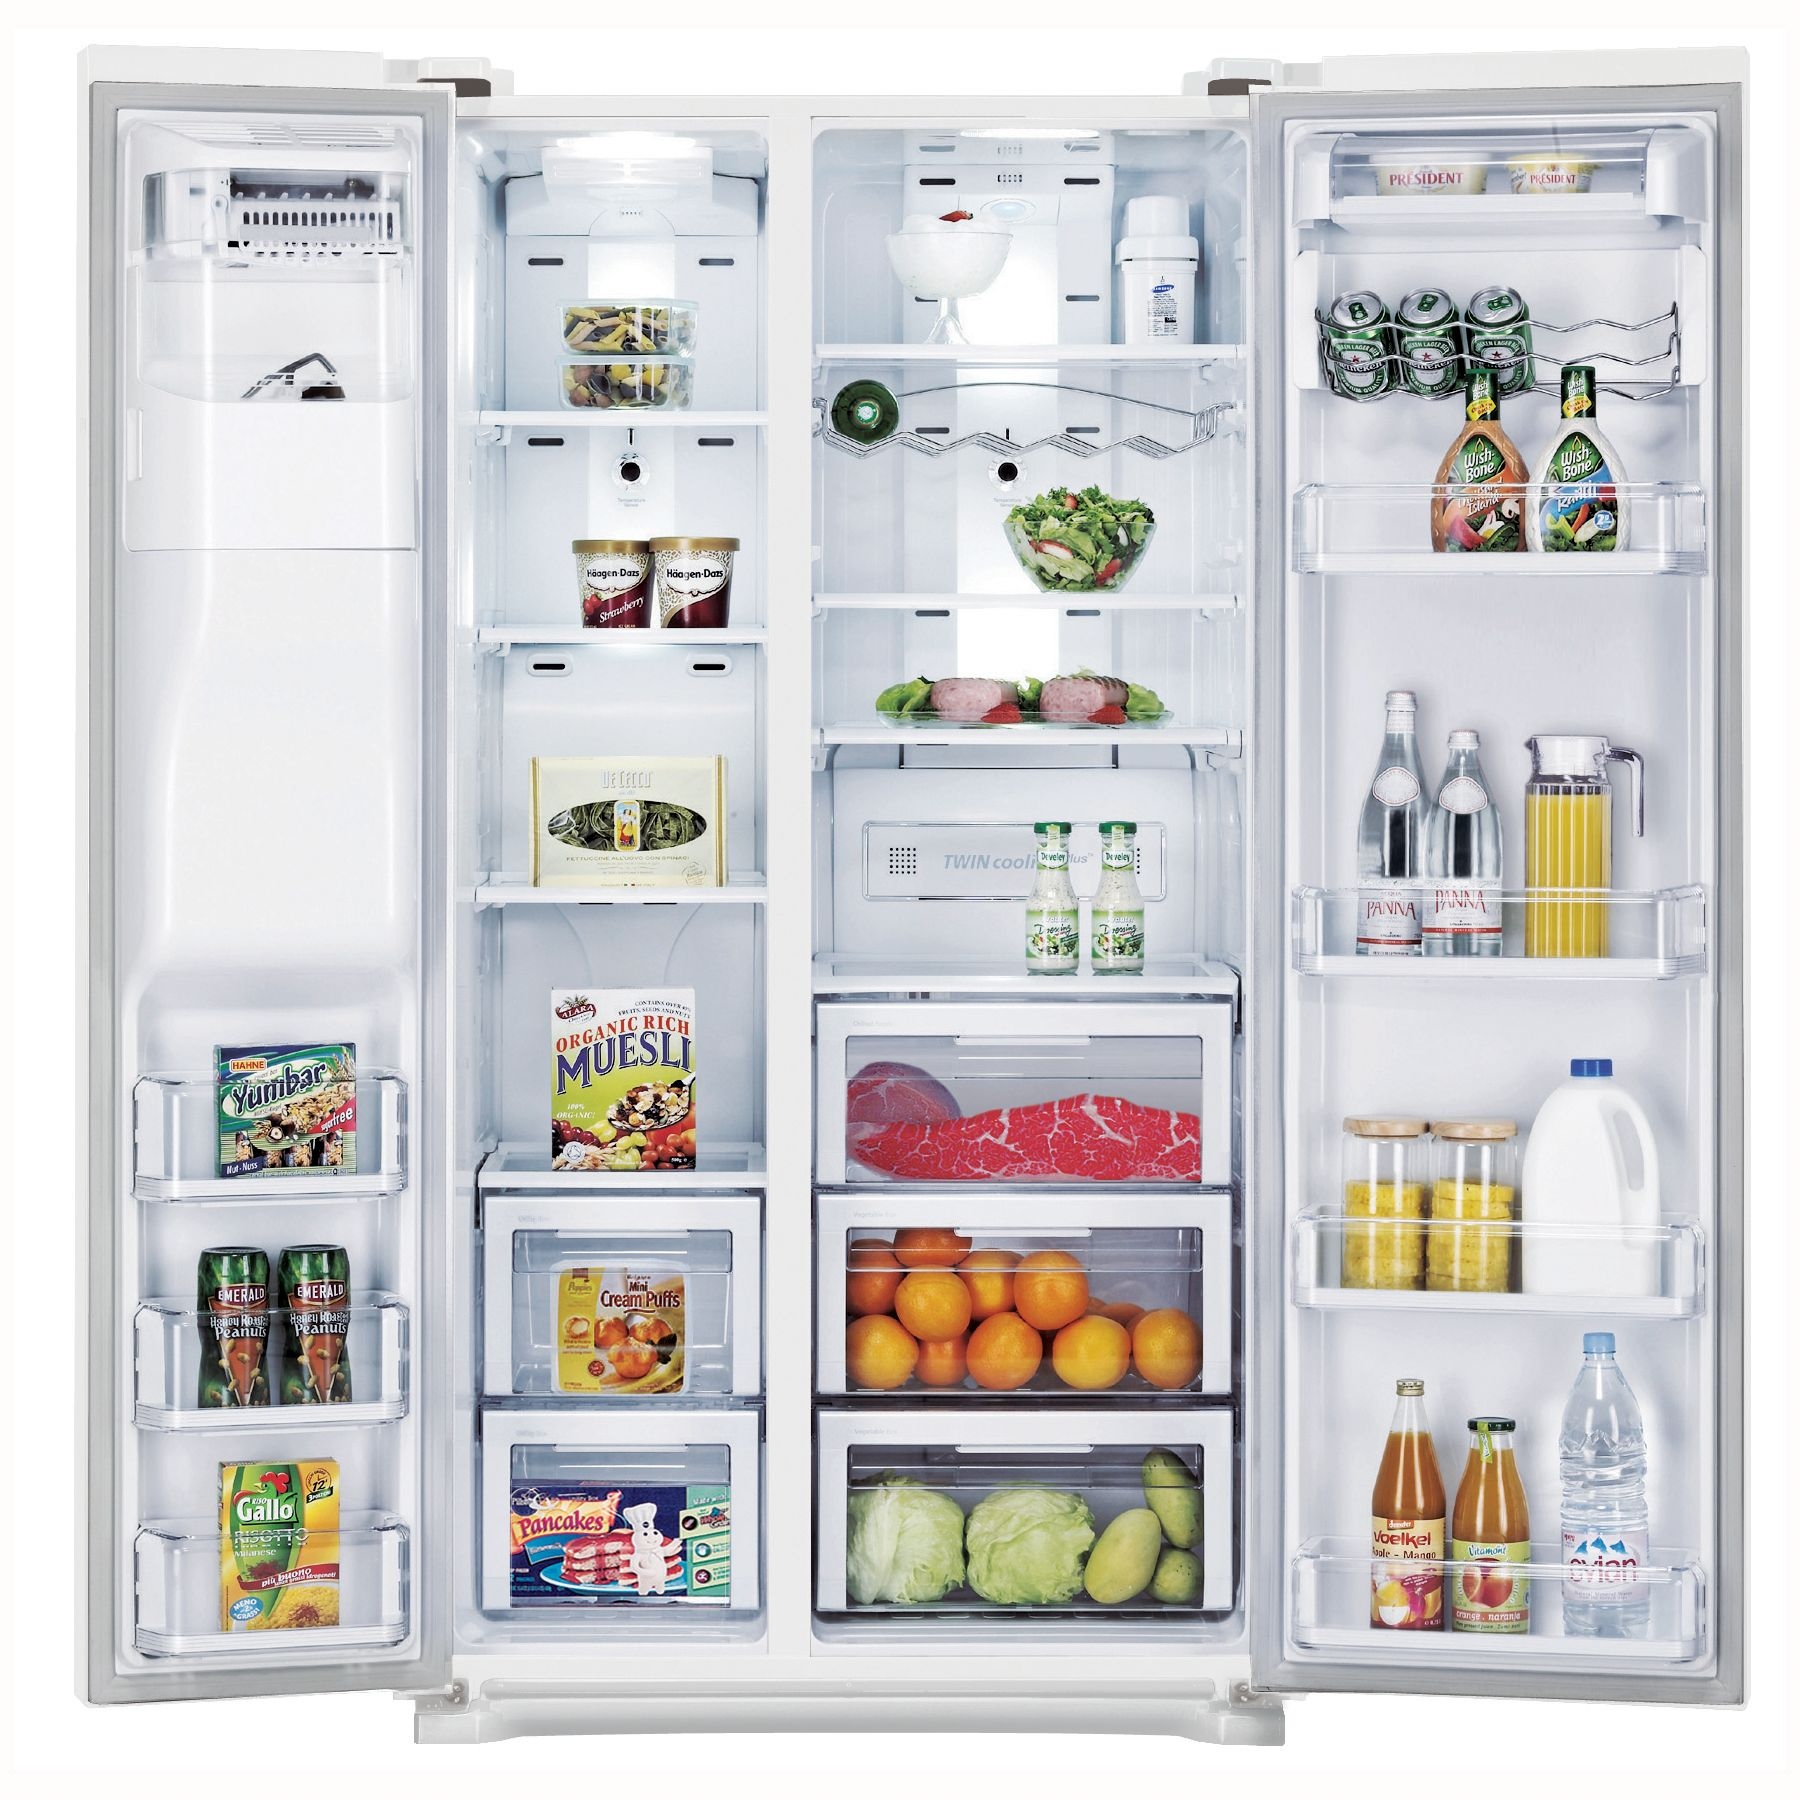 Samsung 24.1 cu. ft. Side-By-Side Refrigerator White